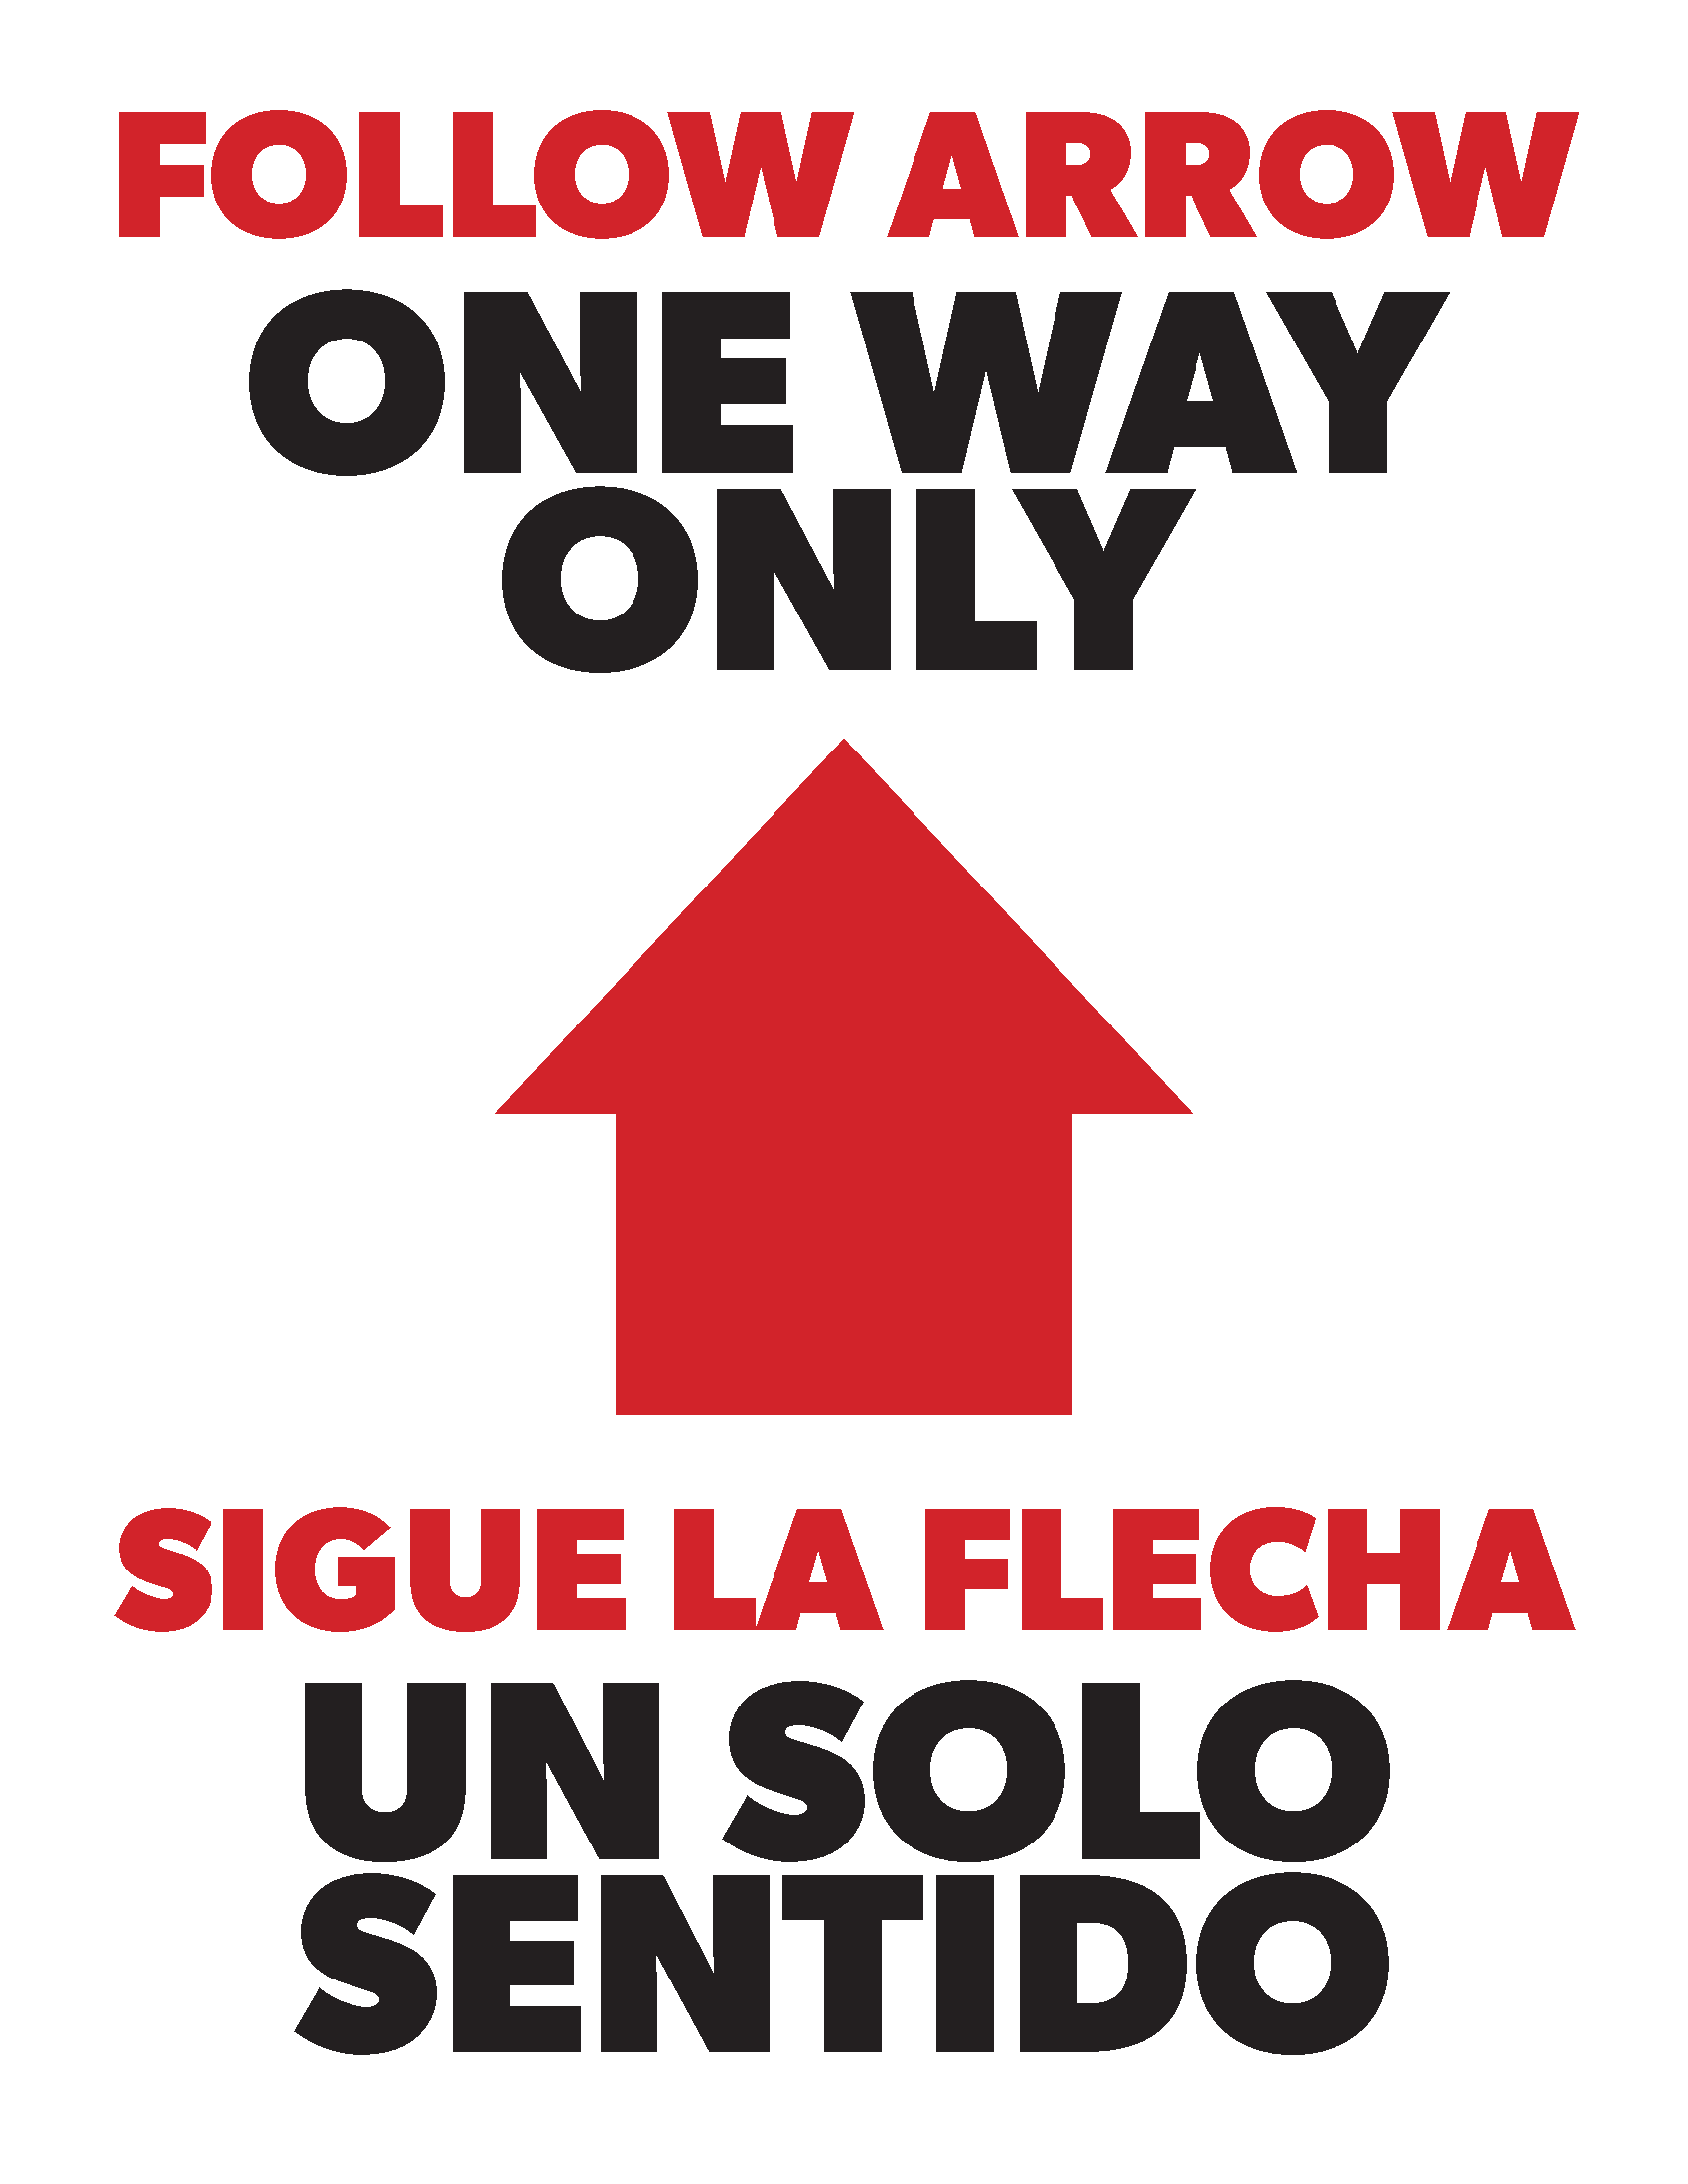 One Way Only (PNG) Opens in new window